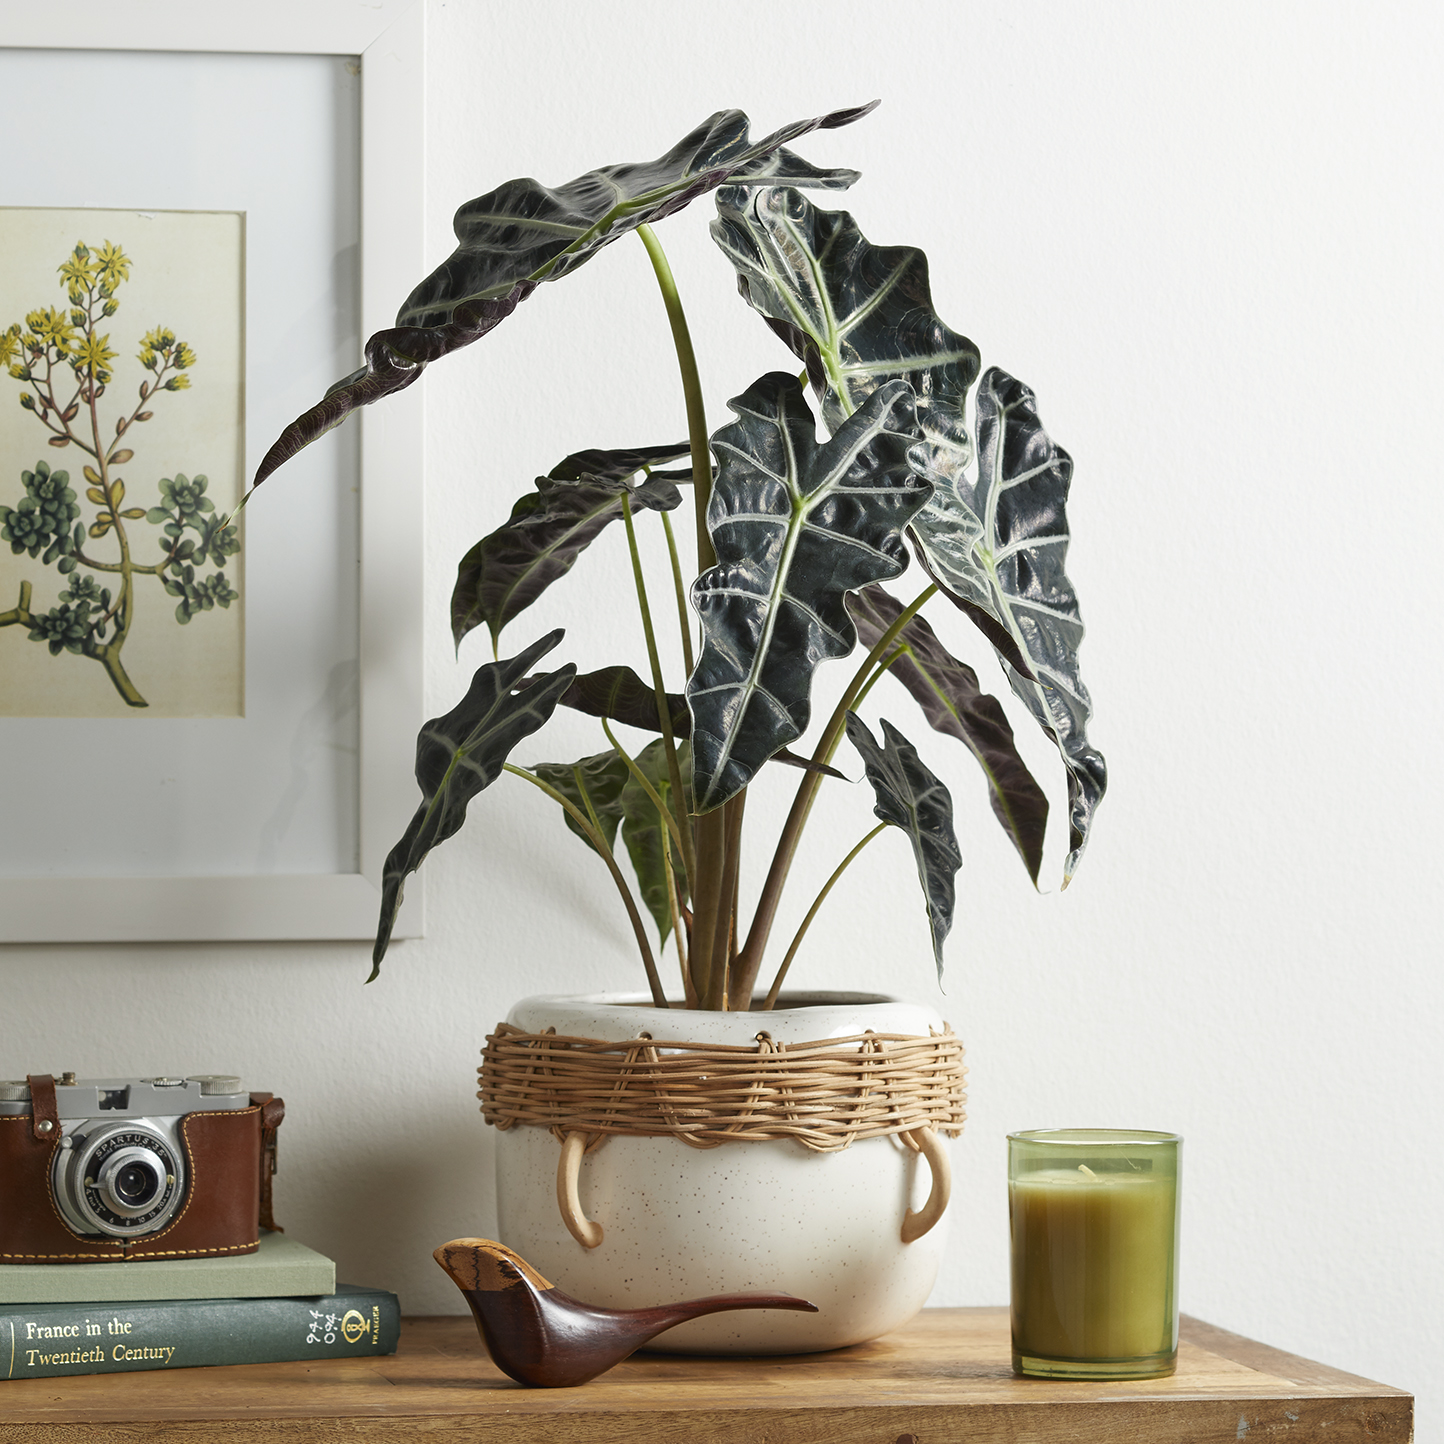 Elephant's ear houseplant sitting on shelf